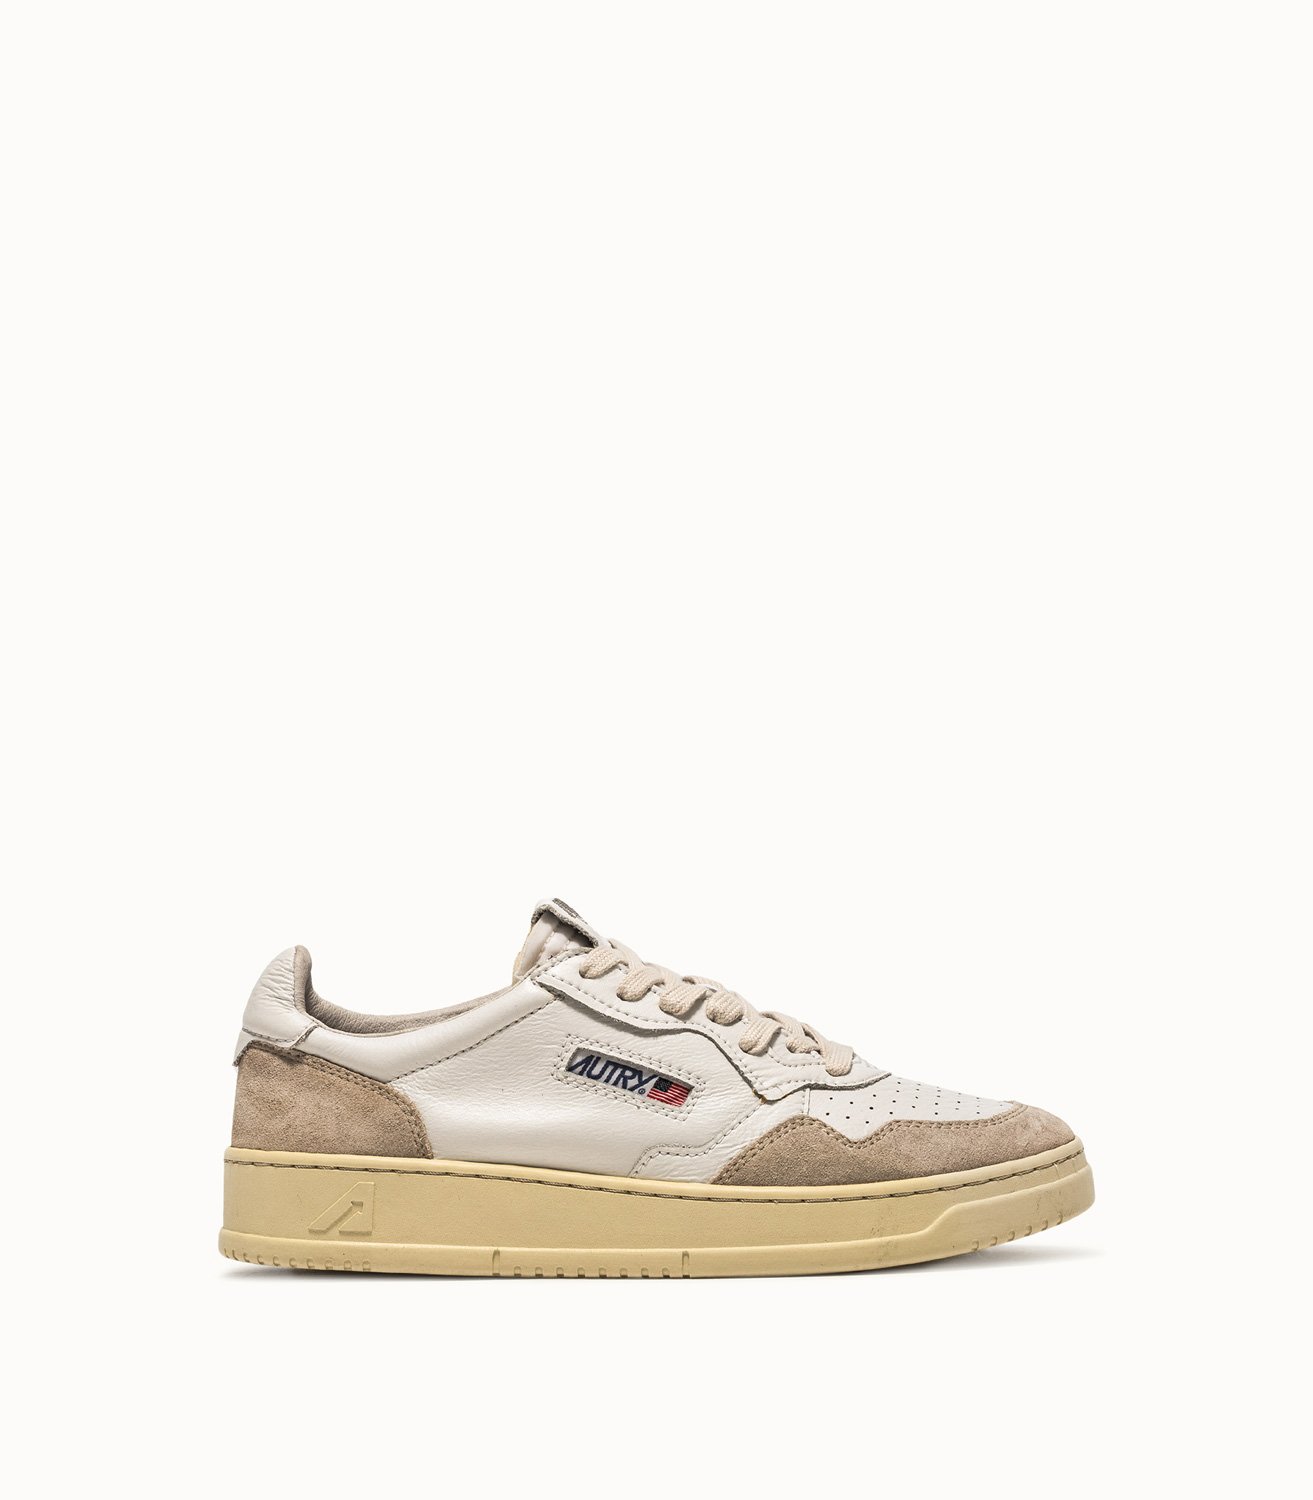 AUTRY 01 LOW SNEAKERS COLOR WHITE BEIGE